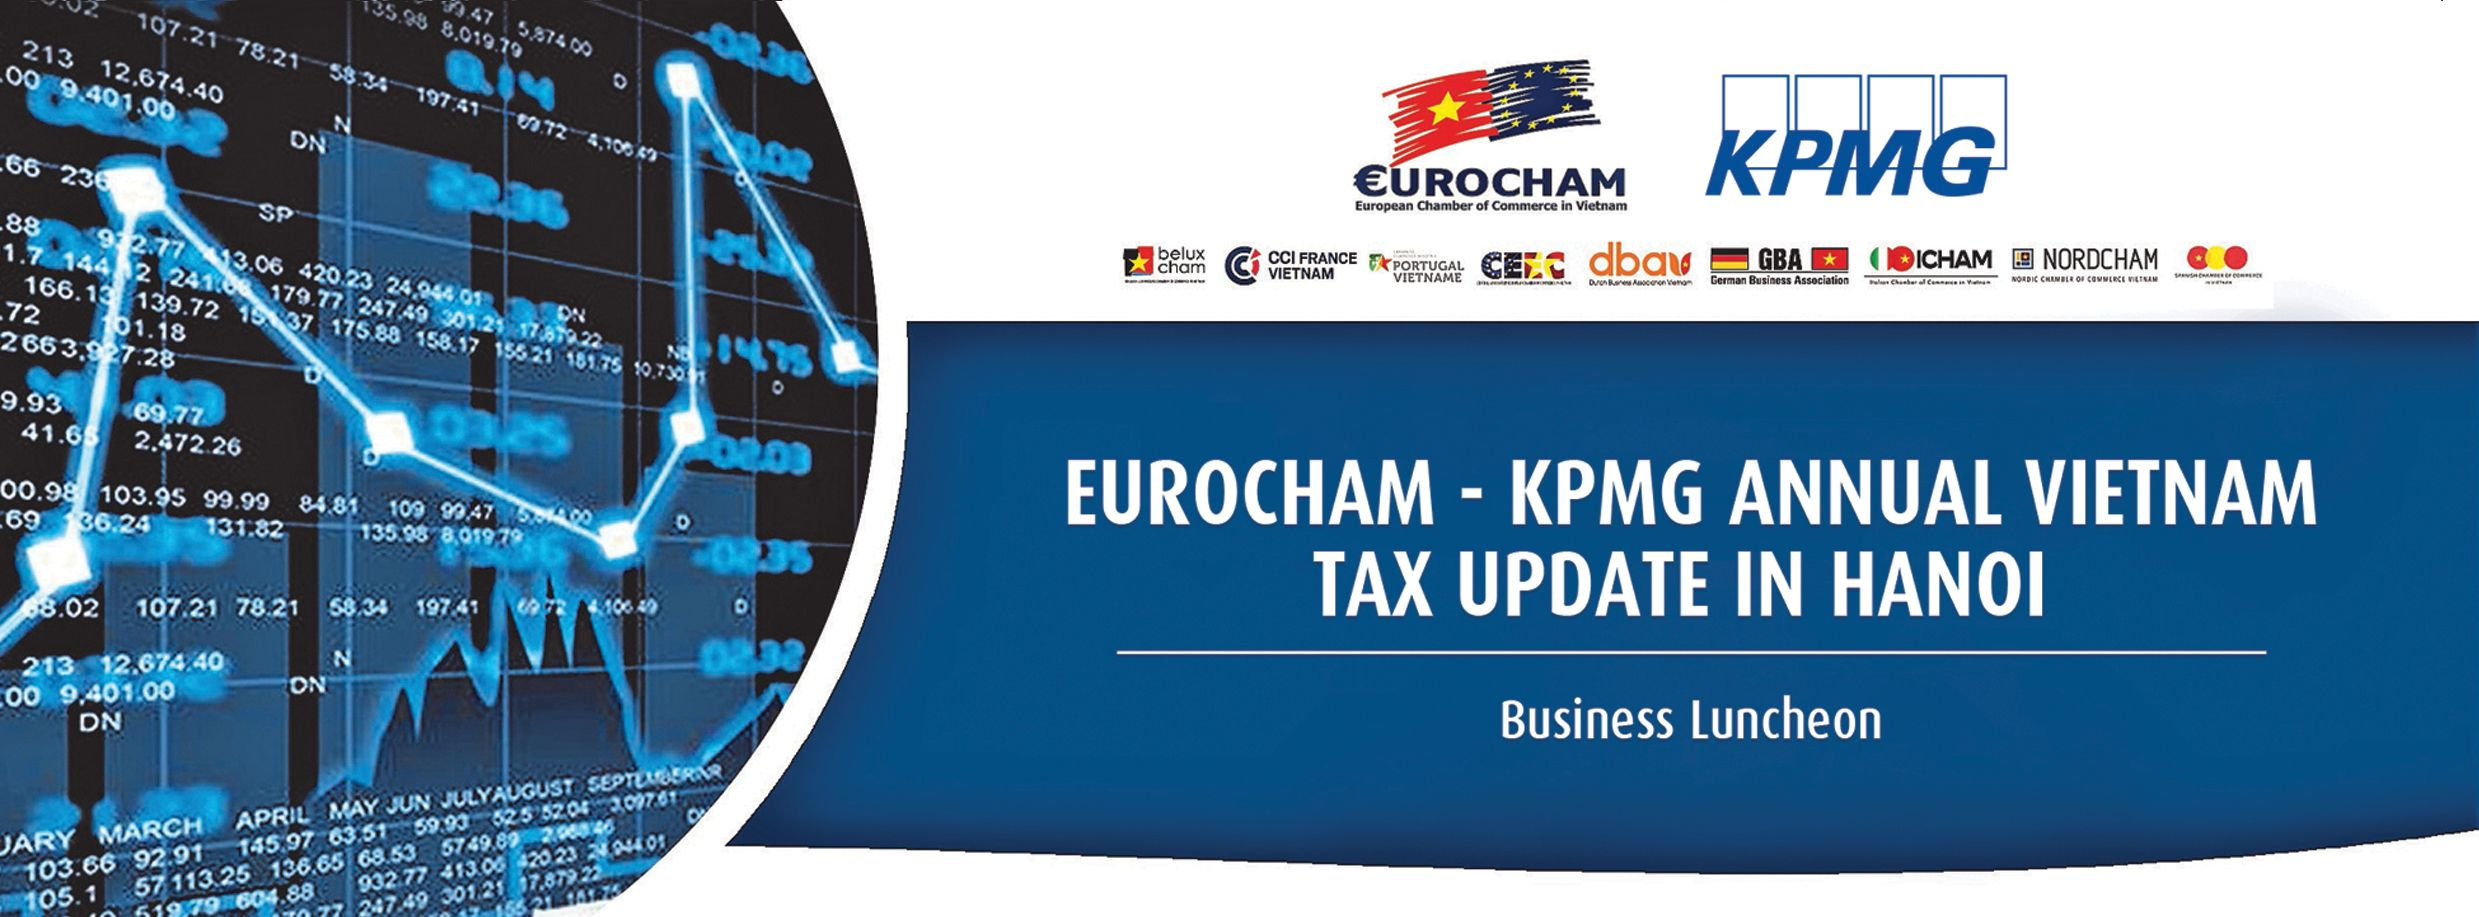 Eurocham - KPMG Annual Vietnam Tax Update in Hanoi